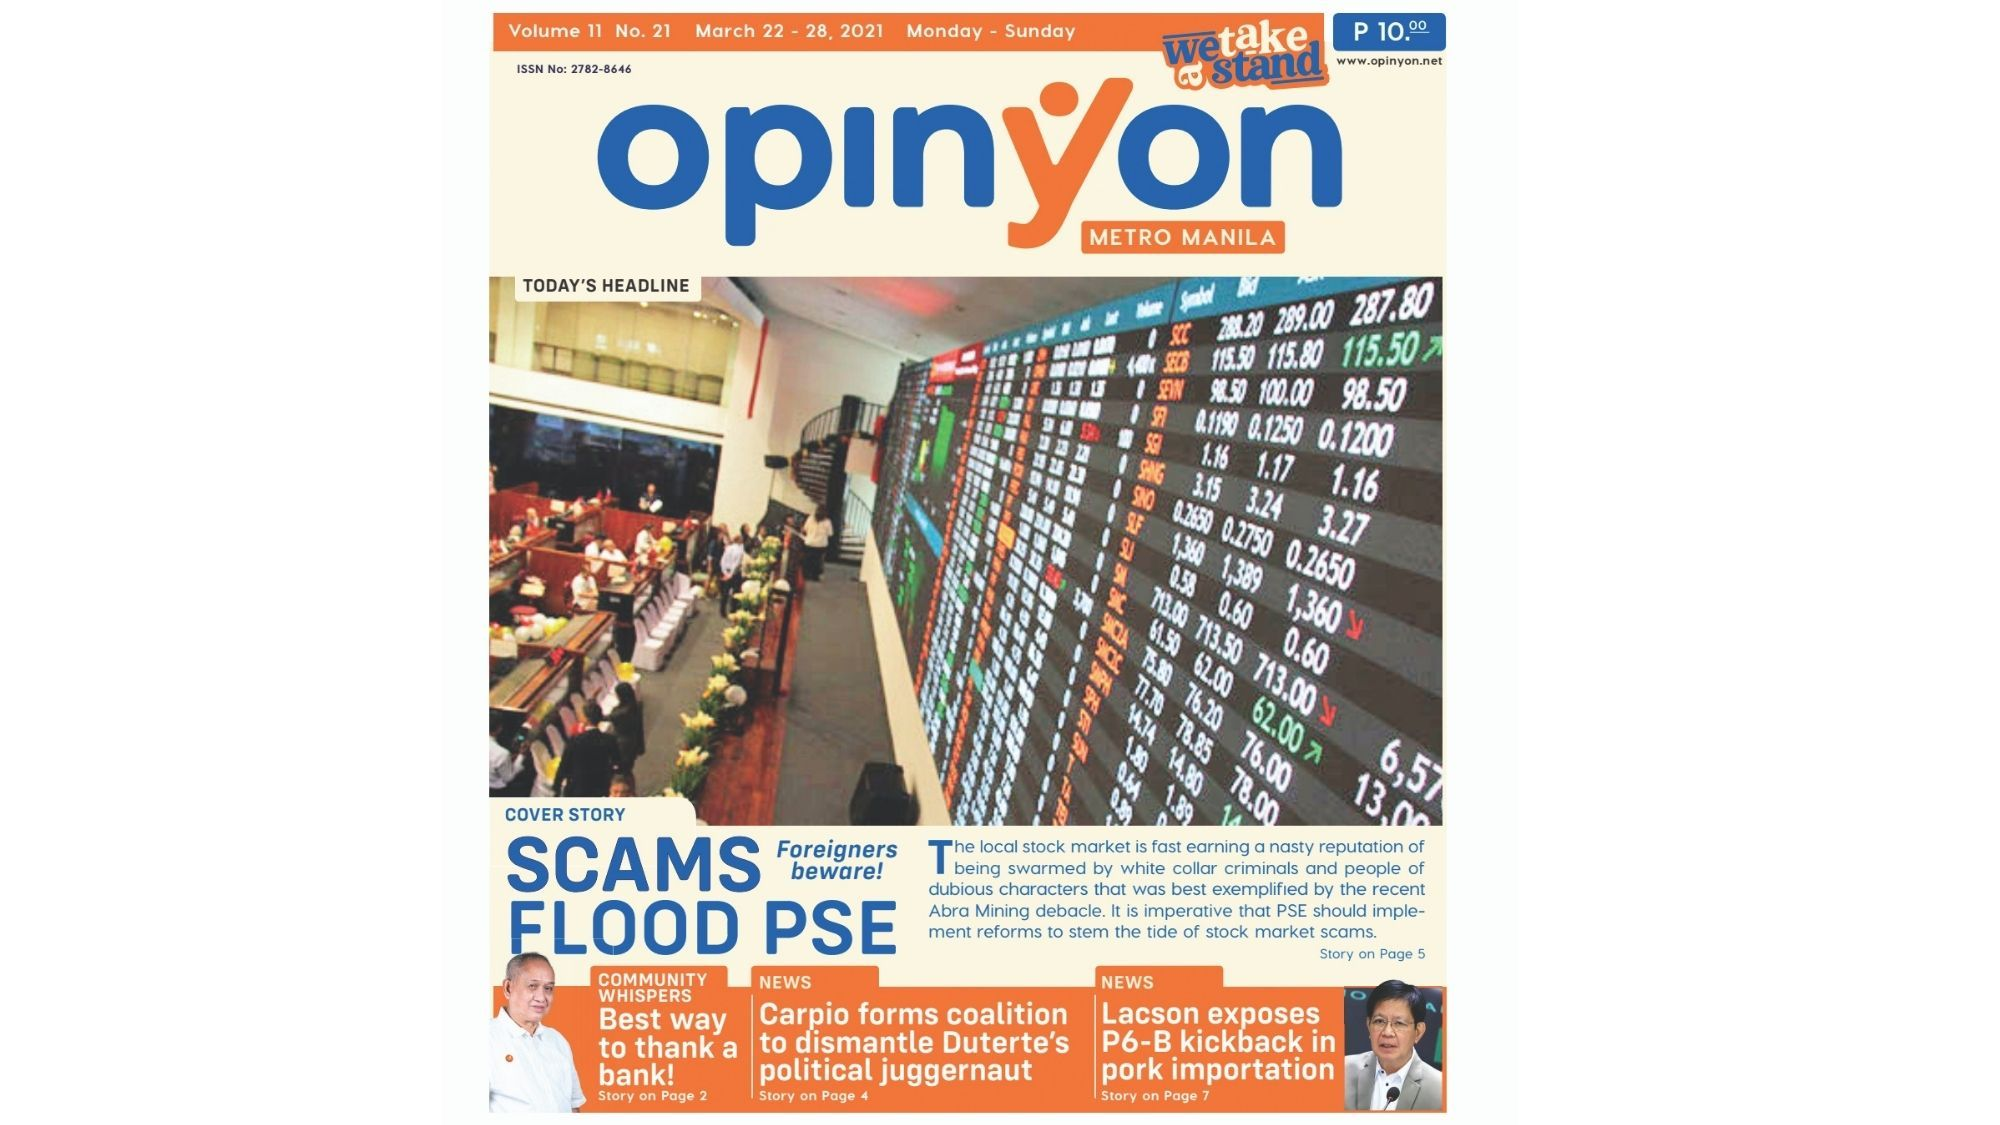 Scams Flood PSE Foreigners beware!